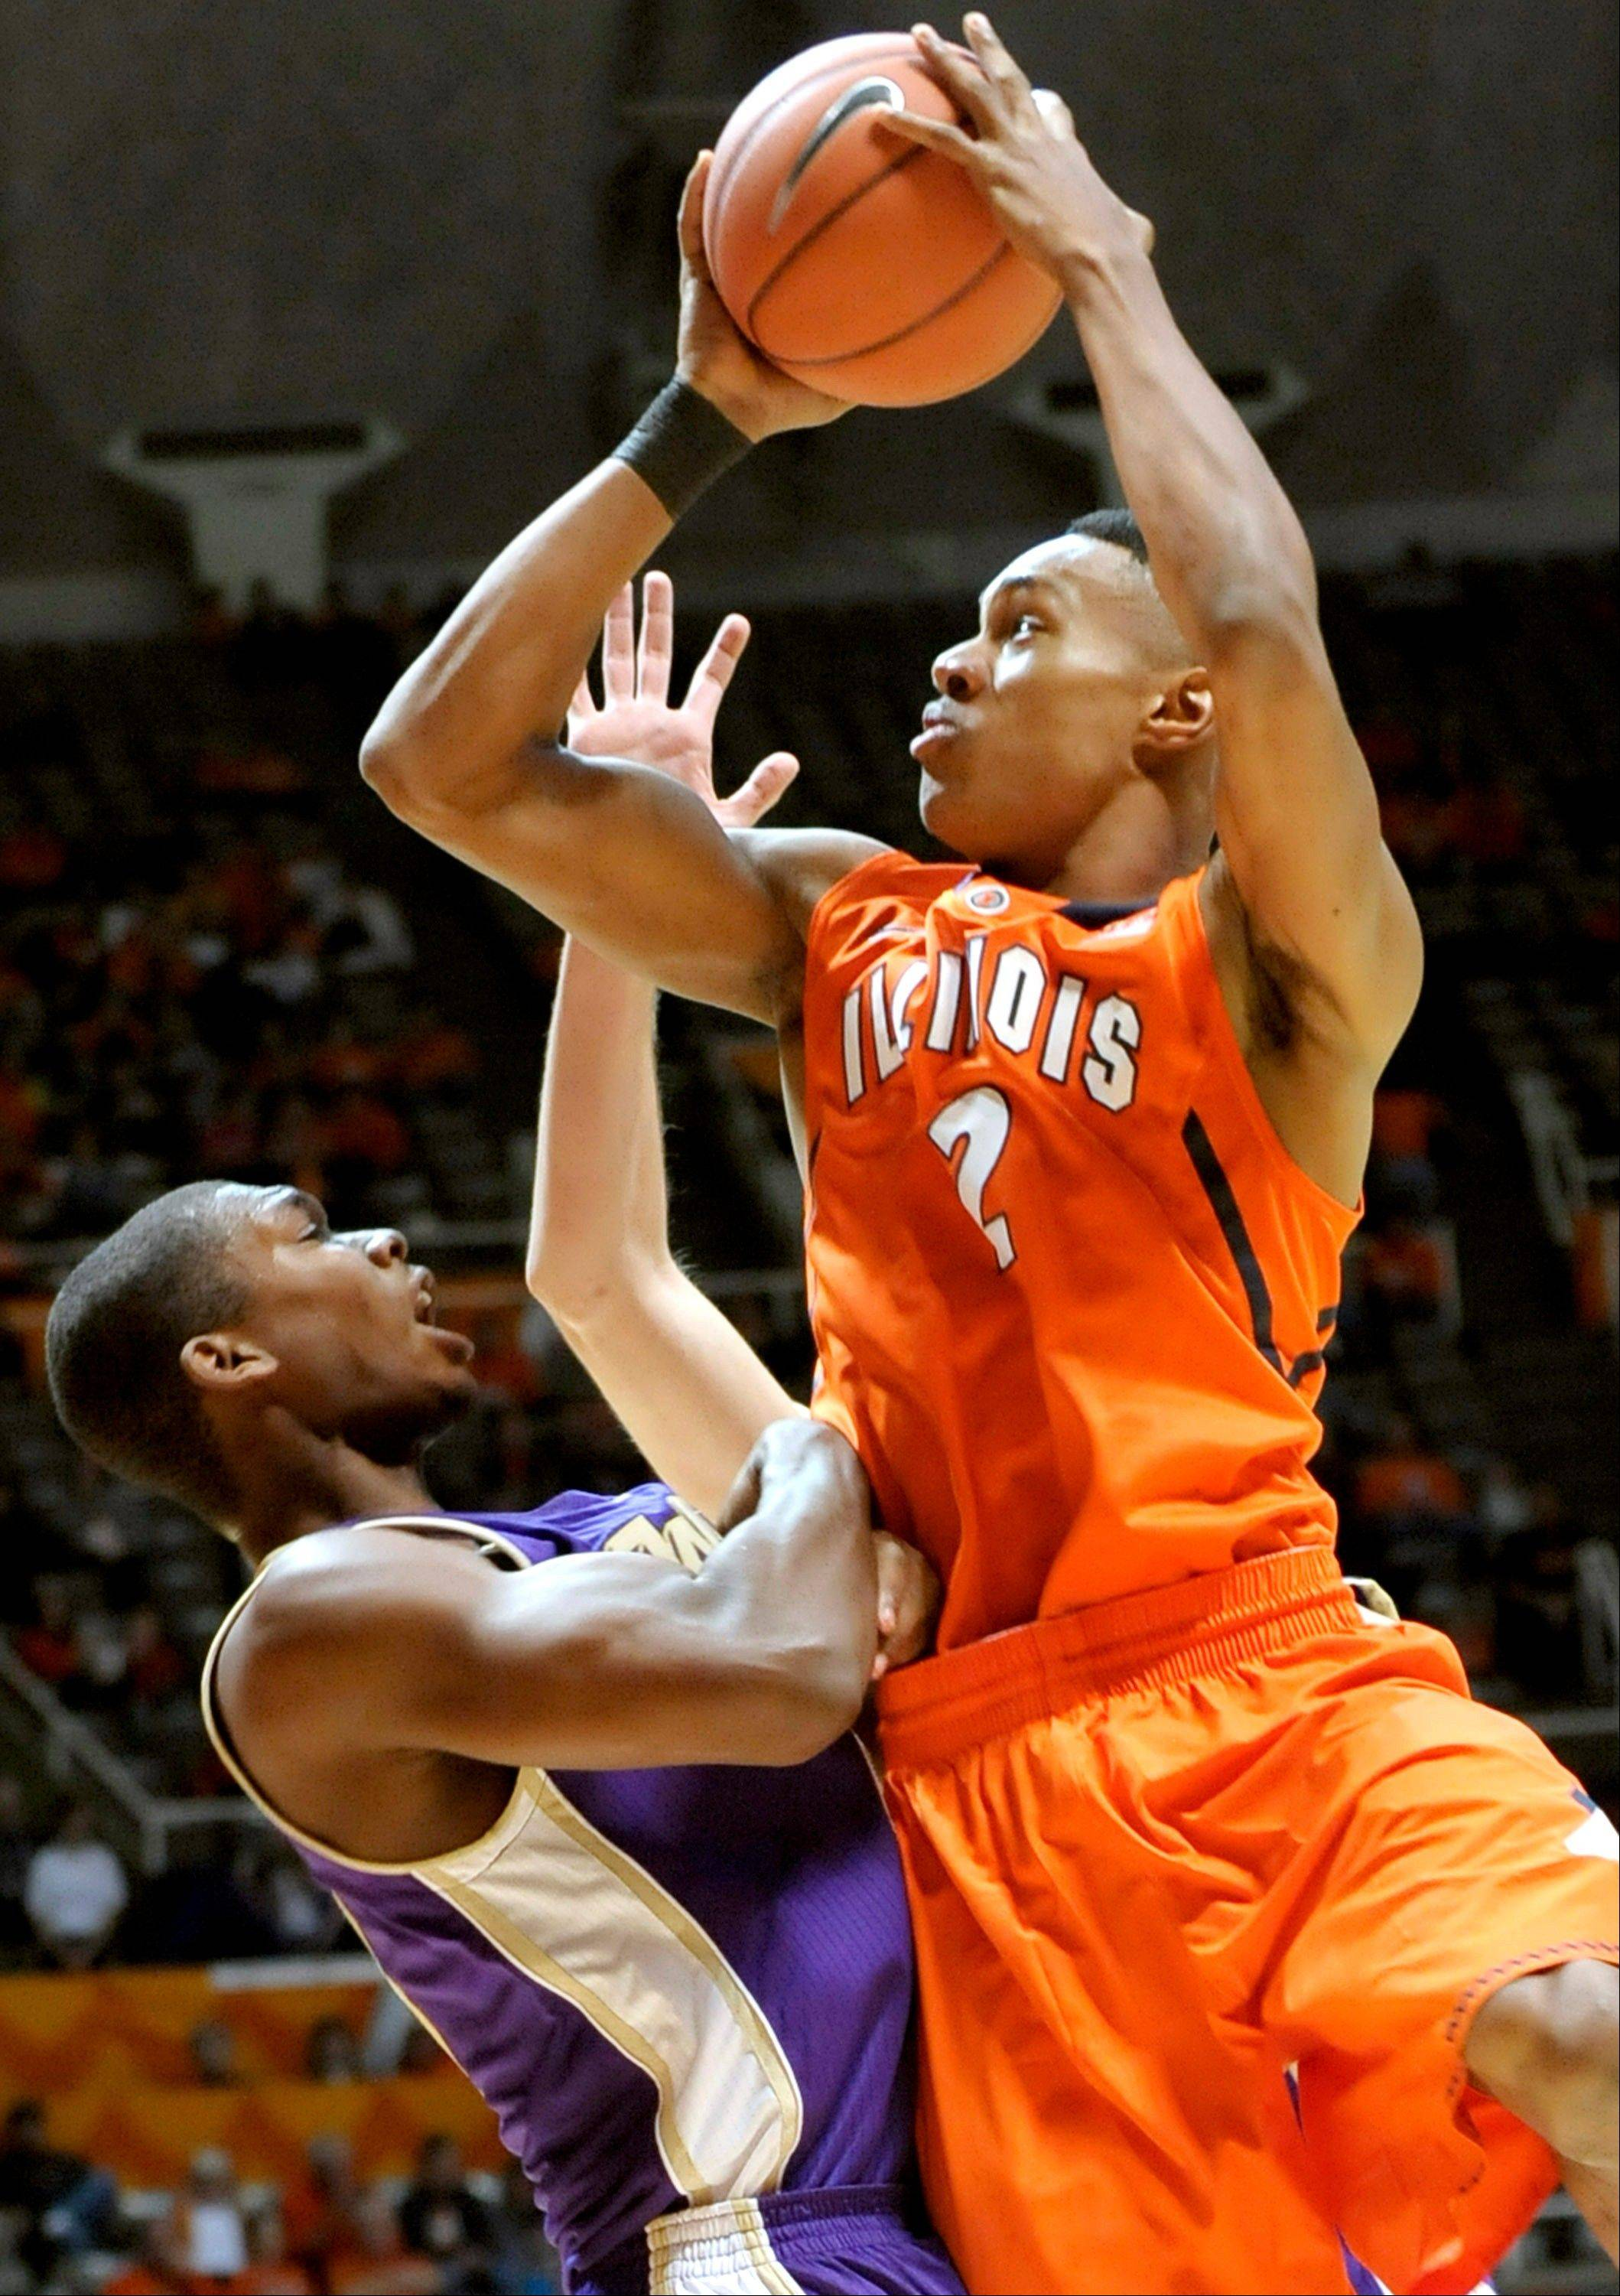 Illinois' Joseph Bertrand drives against West Chester's Corey Blake during their exhibition game Sunday in Champaign.